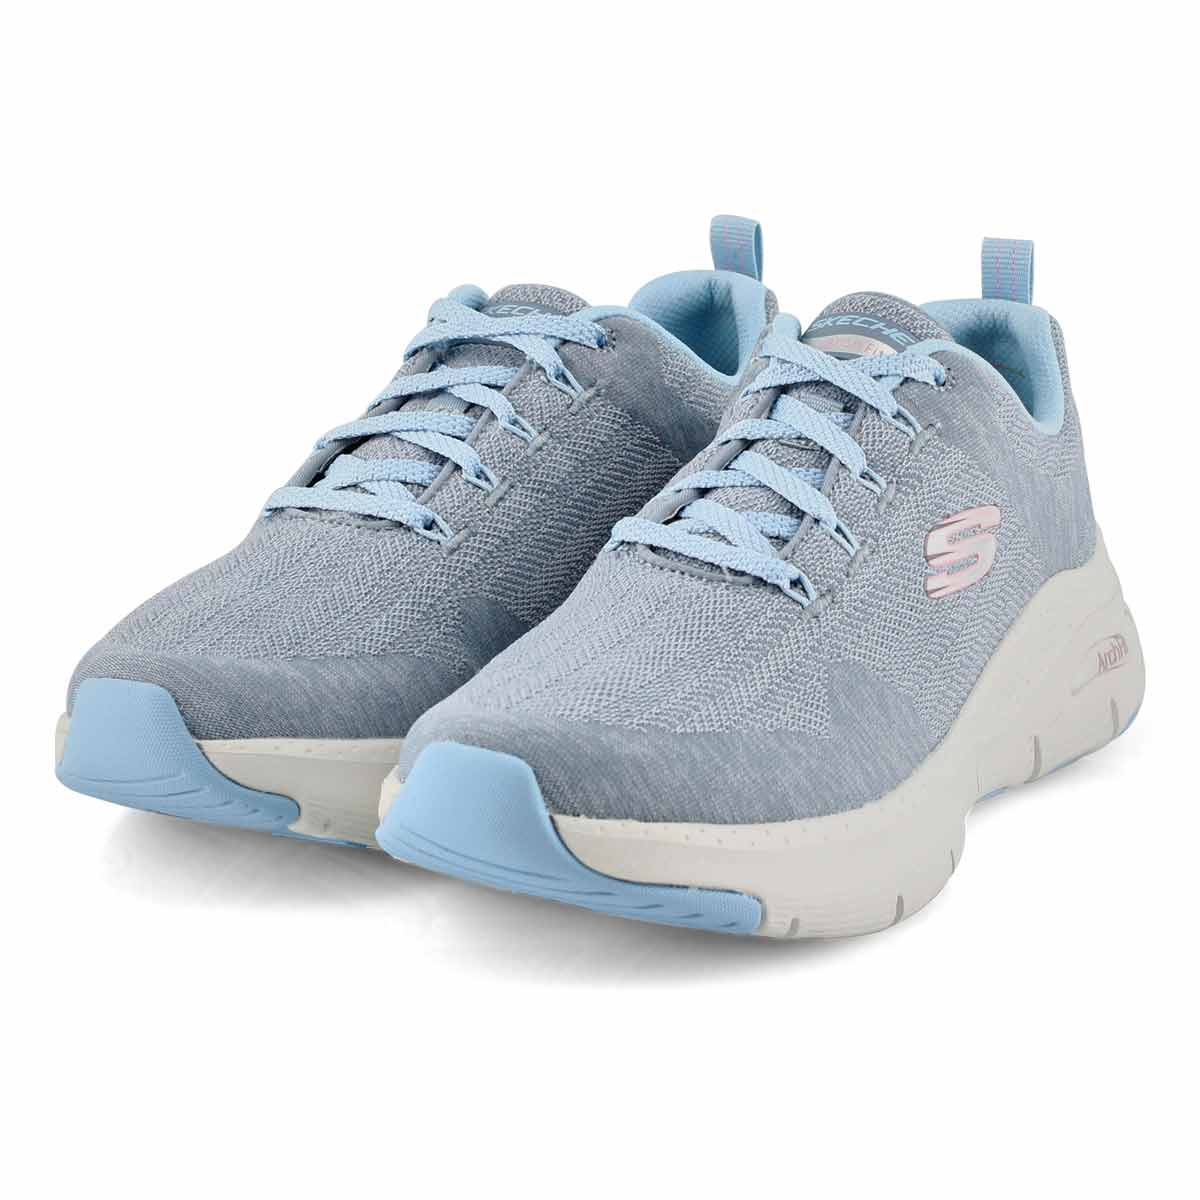 Women's Arch Fit Comfy Wave sneakers -  slate blue